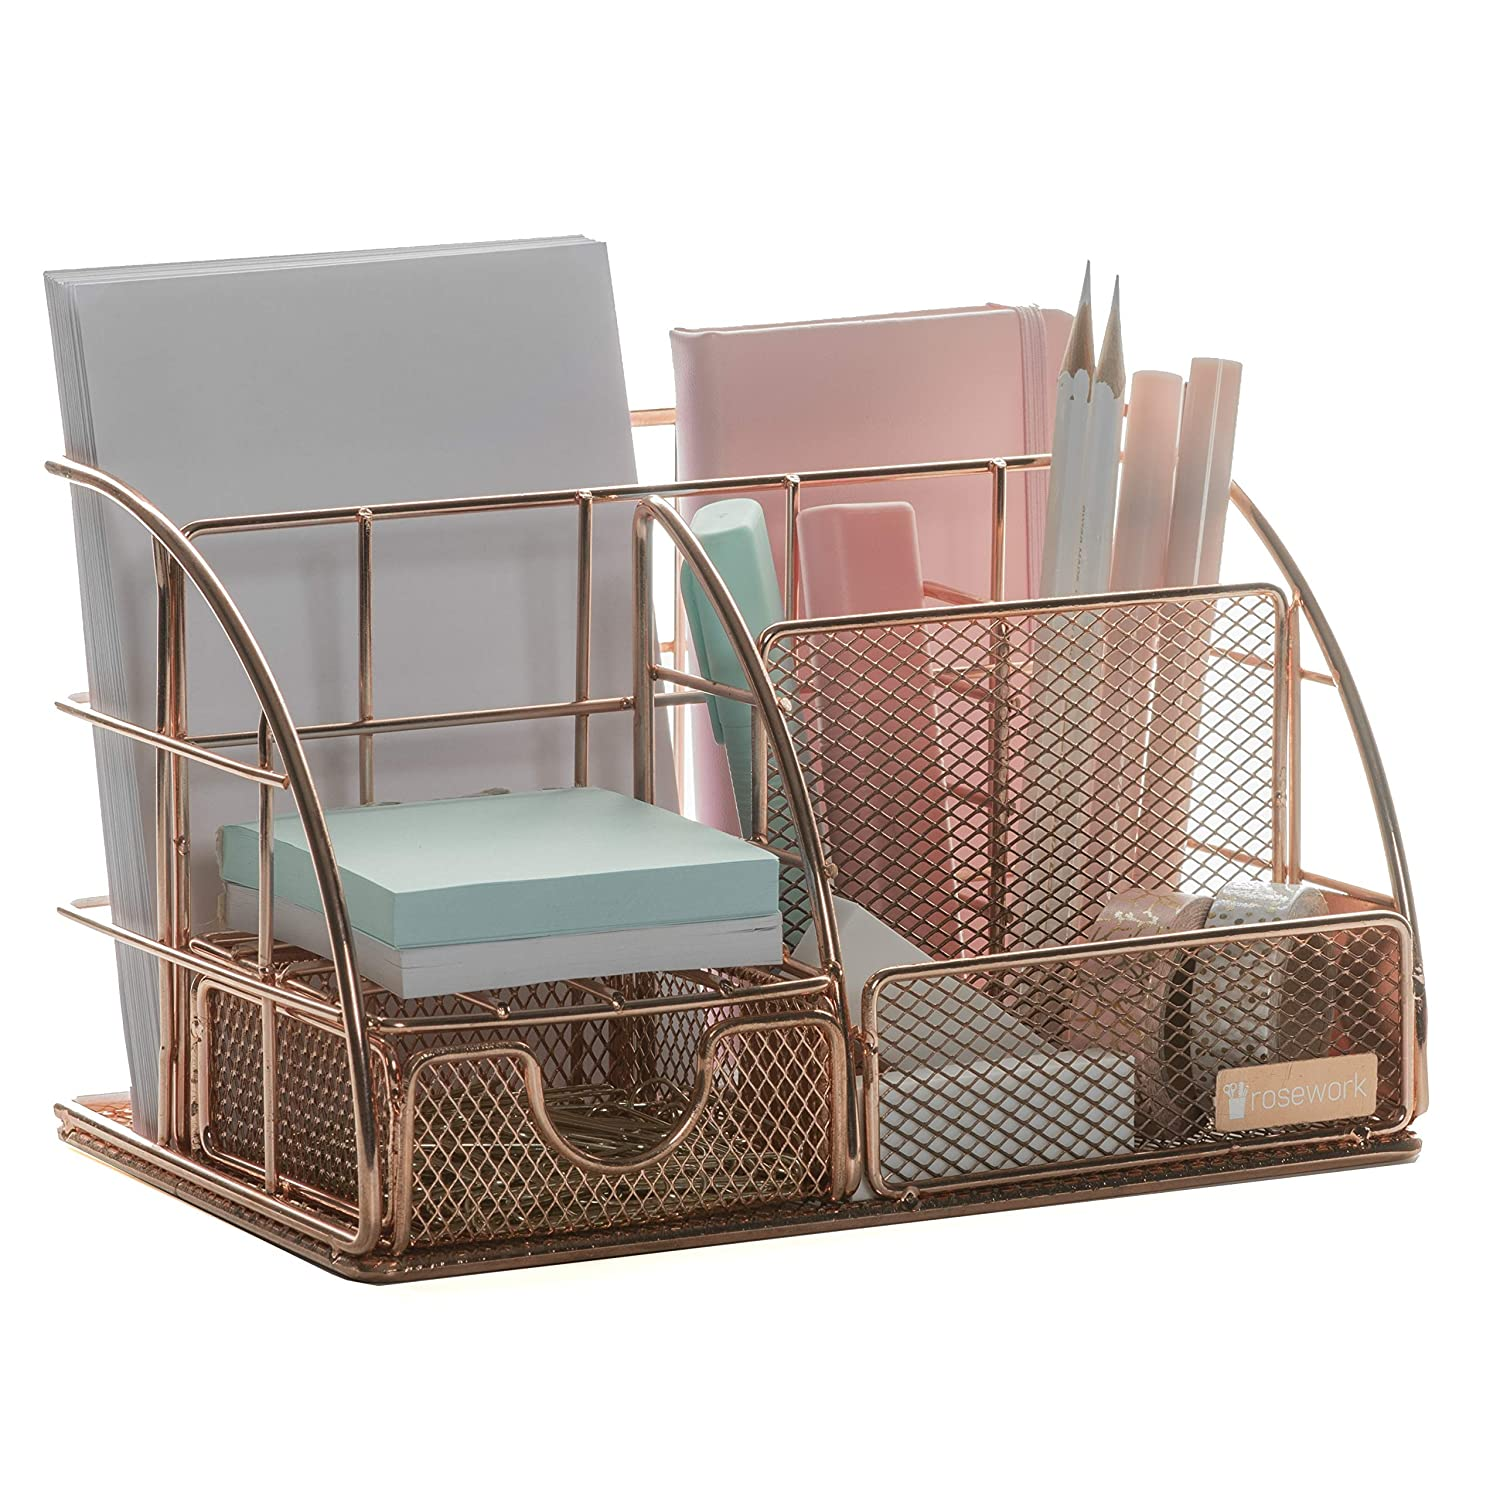 Rose Gold Desk Organizer for Women, All in one Design for Girly Office Supplies in Pink, Desktop Organizer and Accessories for File Organizer, Magazine Holder, Paper Tray, Desk Decor (Rosegold)